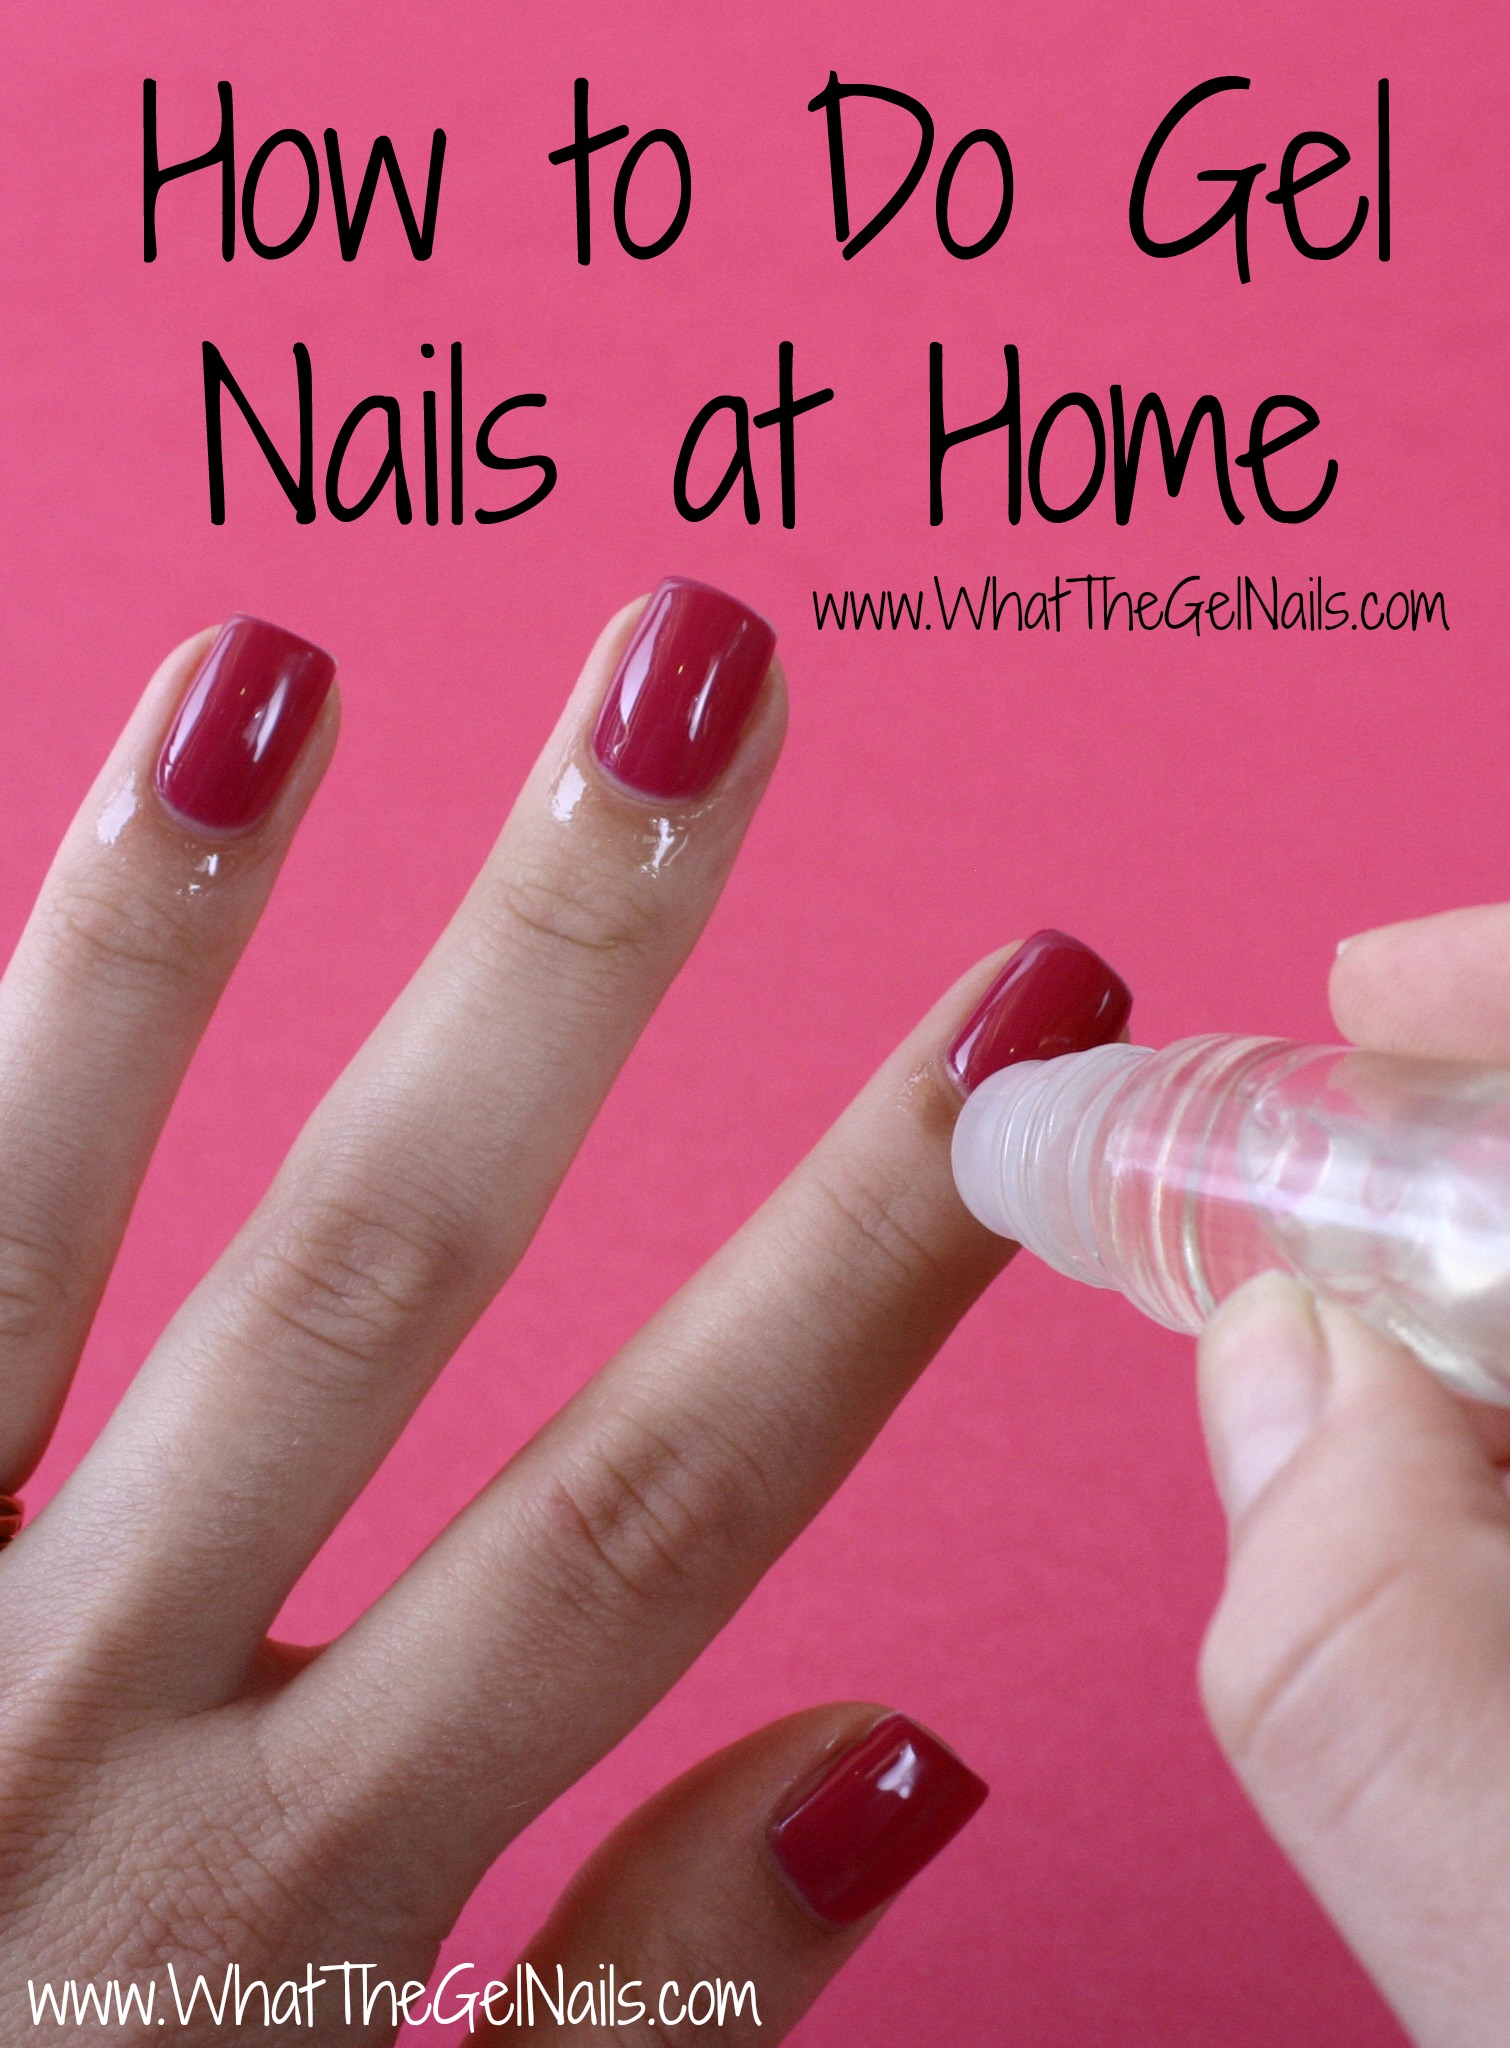 How to make gel nail polish diy best diy do it your self to do gel nails at home solutioingenieria Choice Image